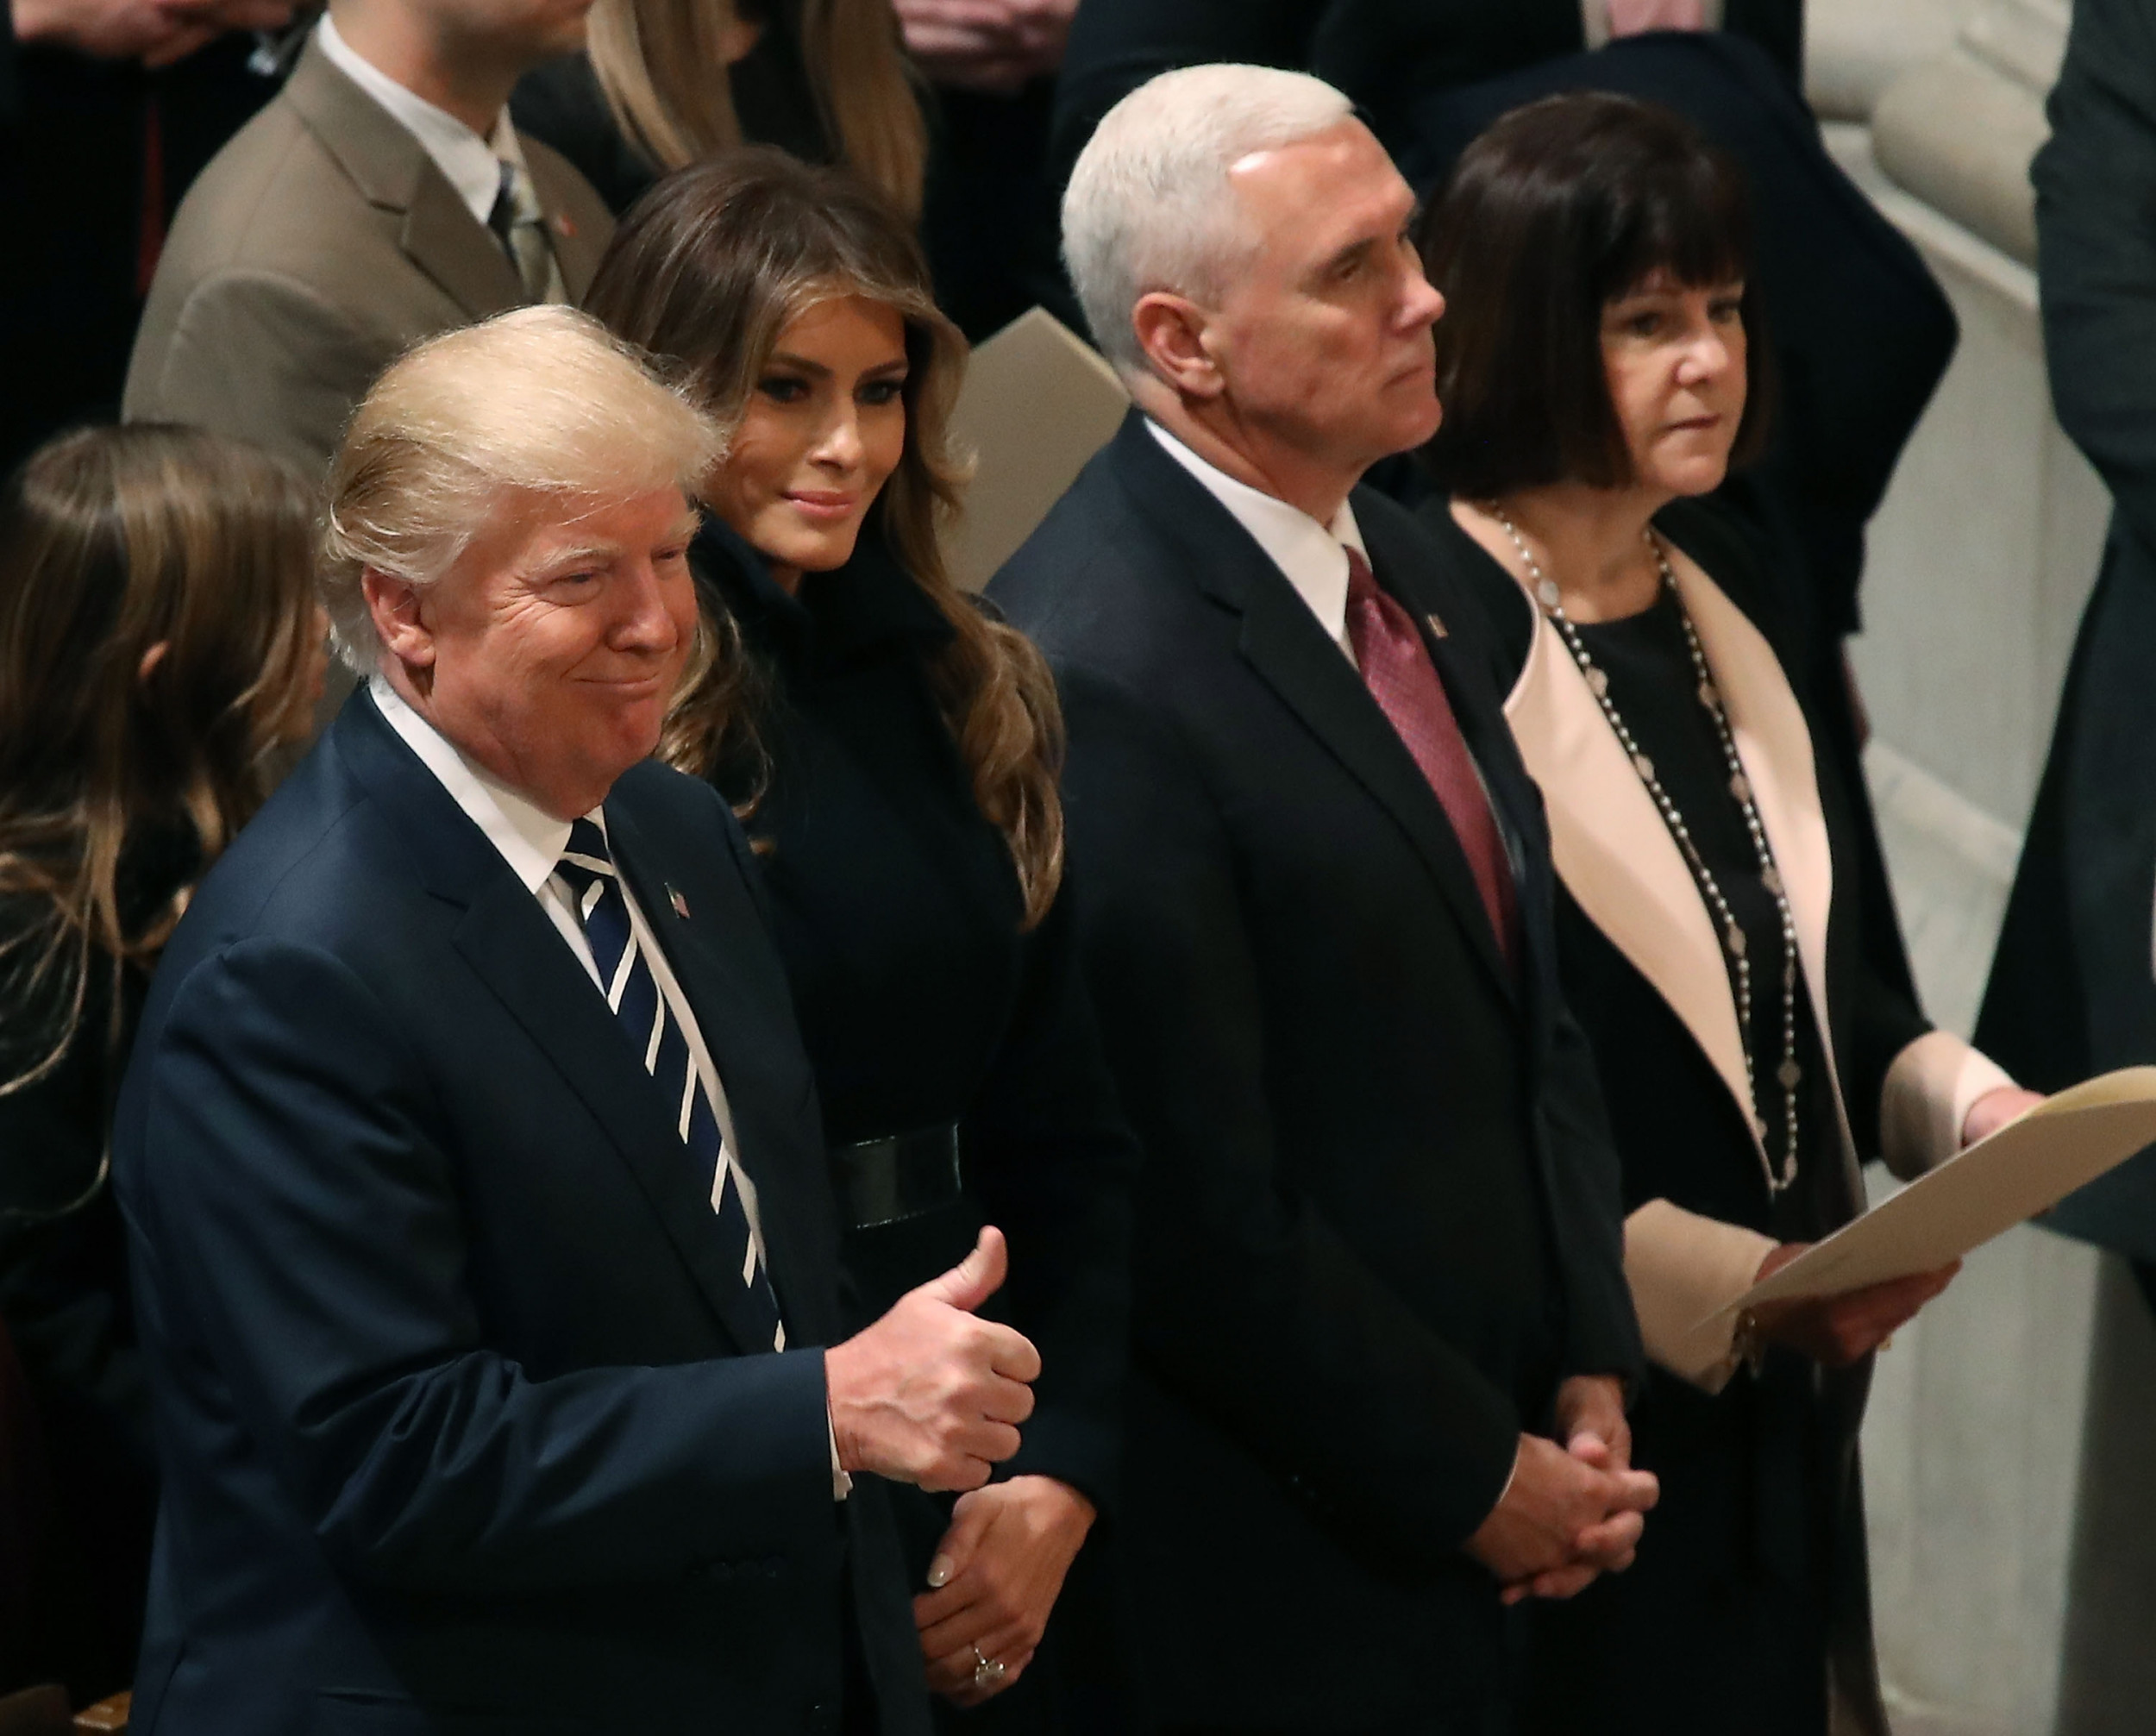 Majority of Americans say Donald Trump is not religious, but most of U.S. say Joe Biden is, survey finds